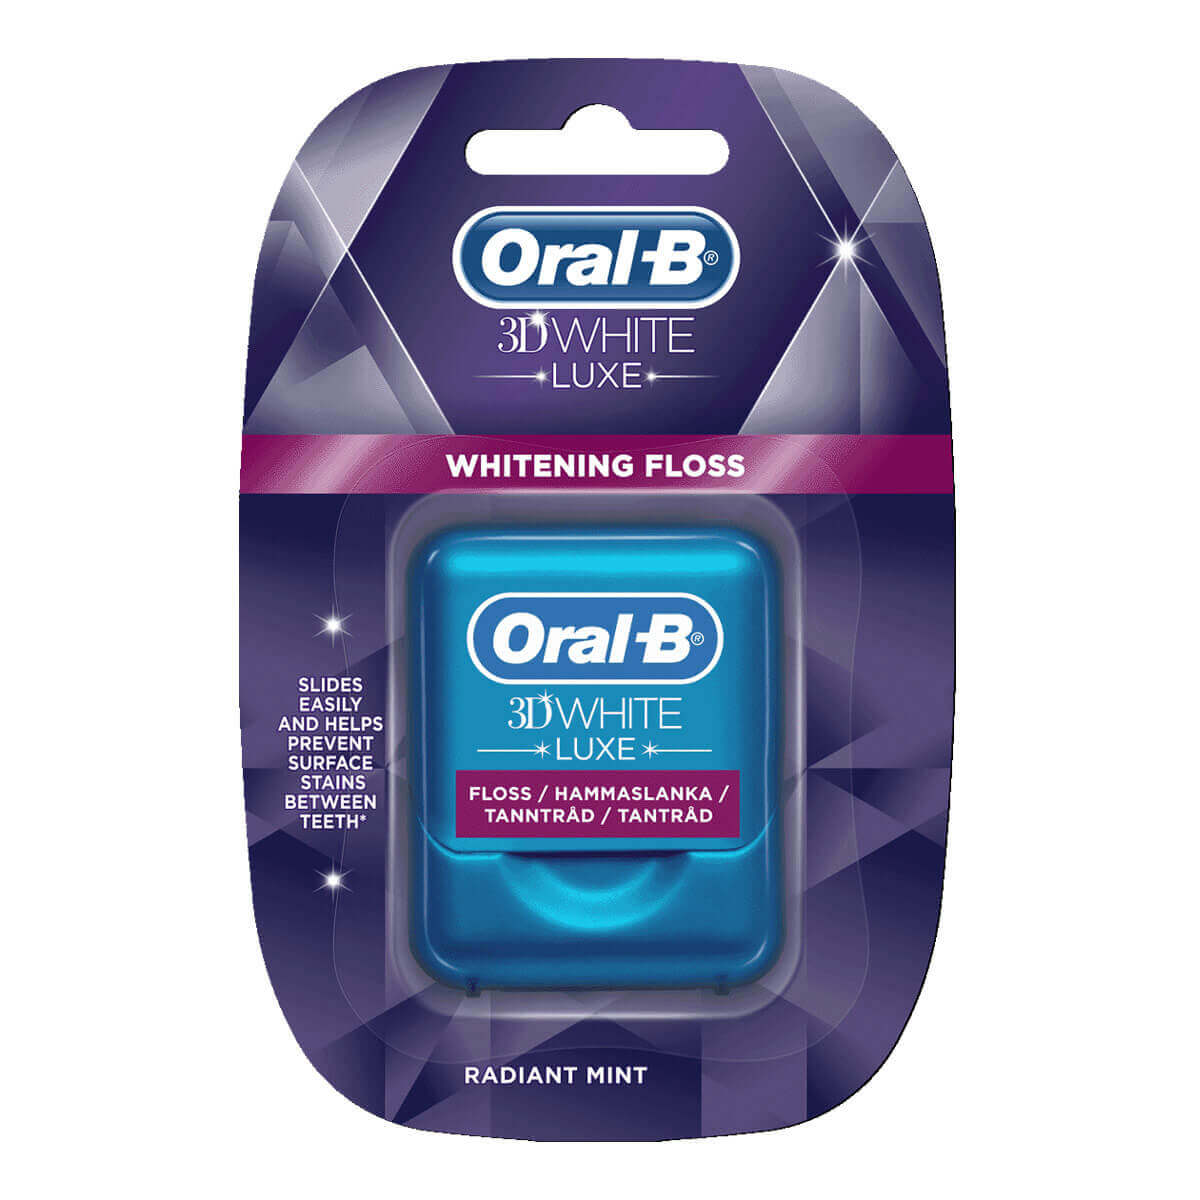 Oral-B 3D White Luxe Whitening tandtråd